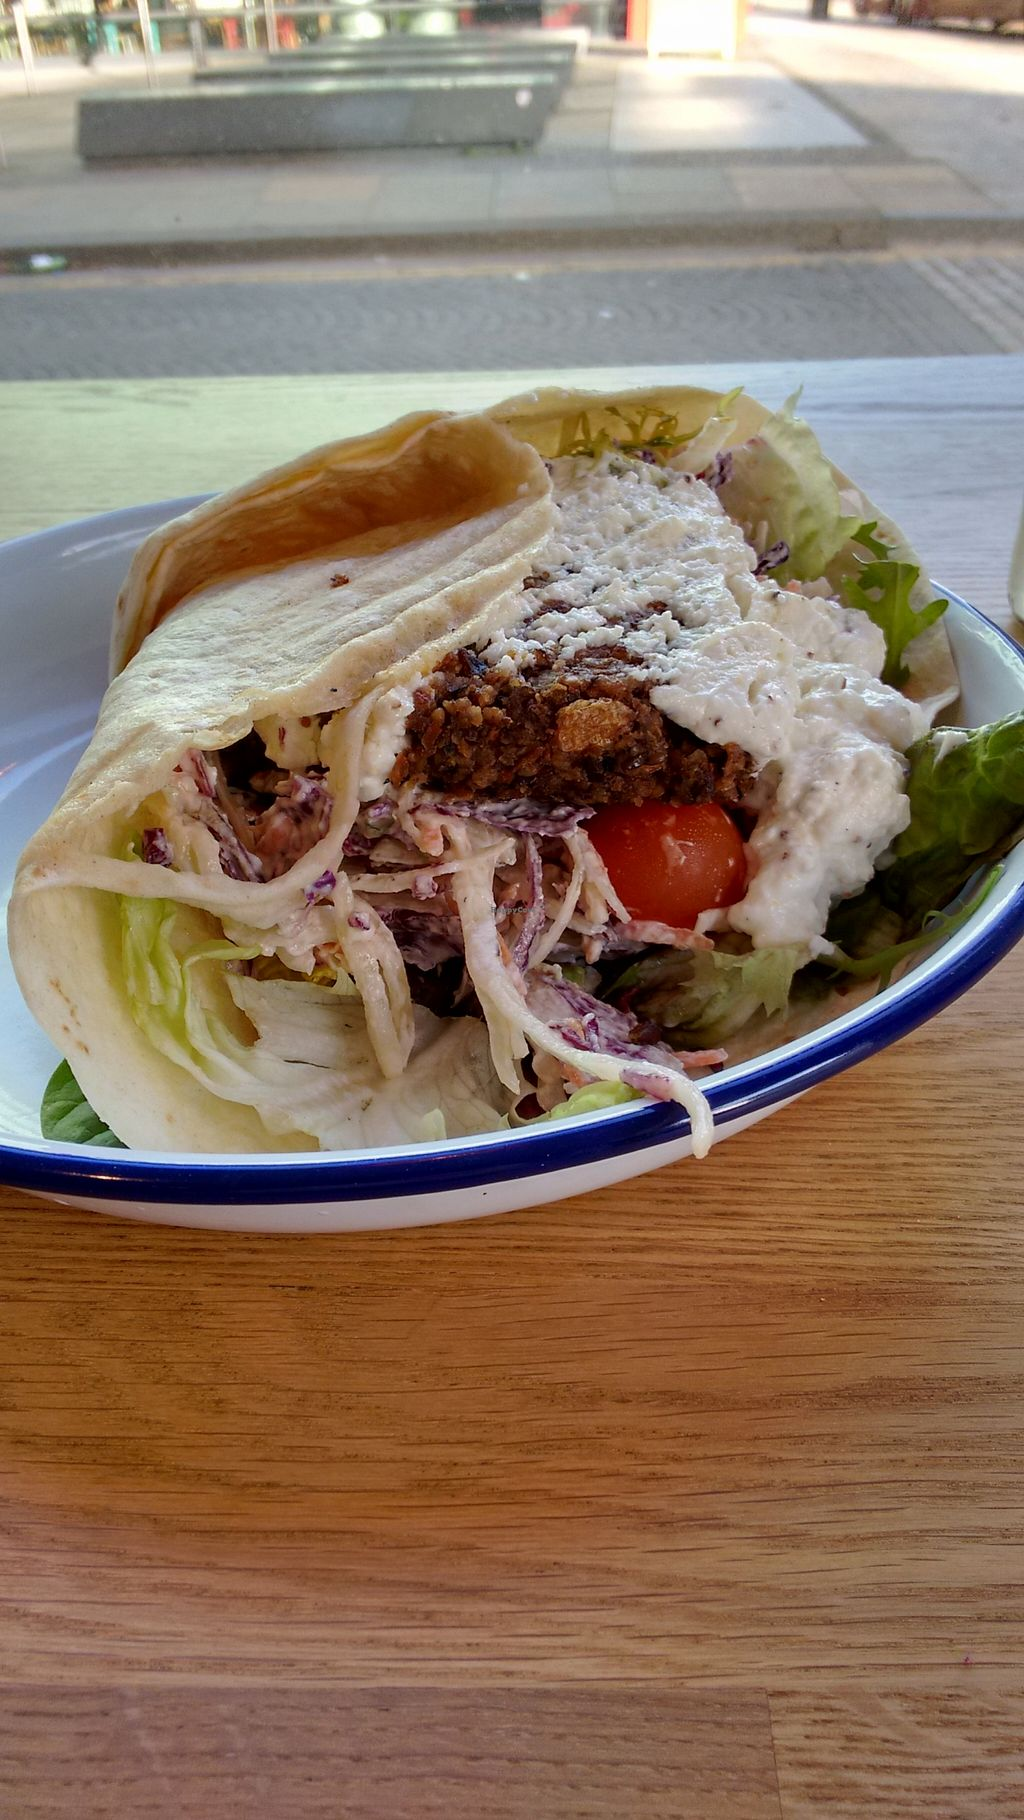 """Photo of Henderson's - Holyrood  by <a href=""""/members/profile/craigmc"""">craigmc</a> <br/>Vegan haggis burger wrap, huge! <br/> February 18, 2016  - <a href='/contact/abuse/image/68540/136815'>Report</a>"""